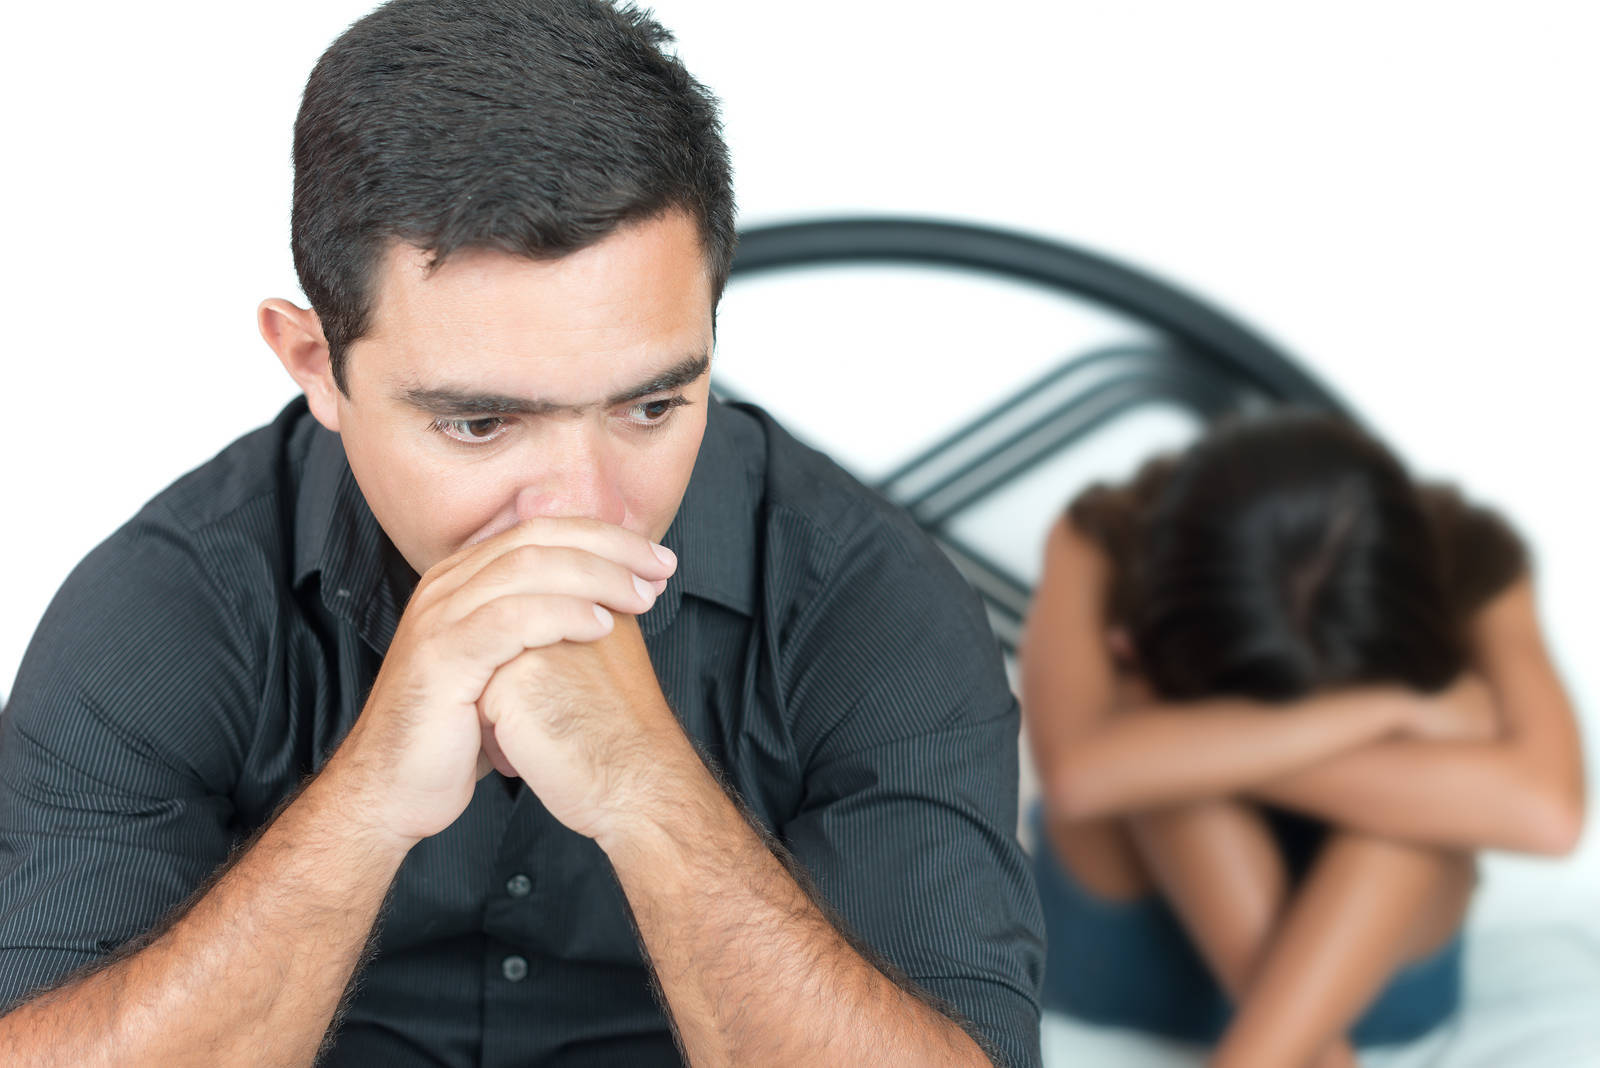 7bc72ad9cf957b783e08_bigstock-Worried-young-father-with-her--69263728.jpg